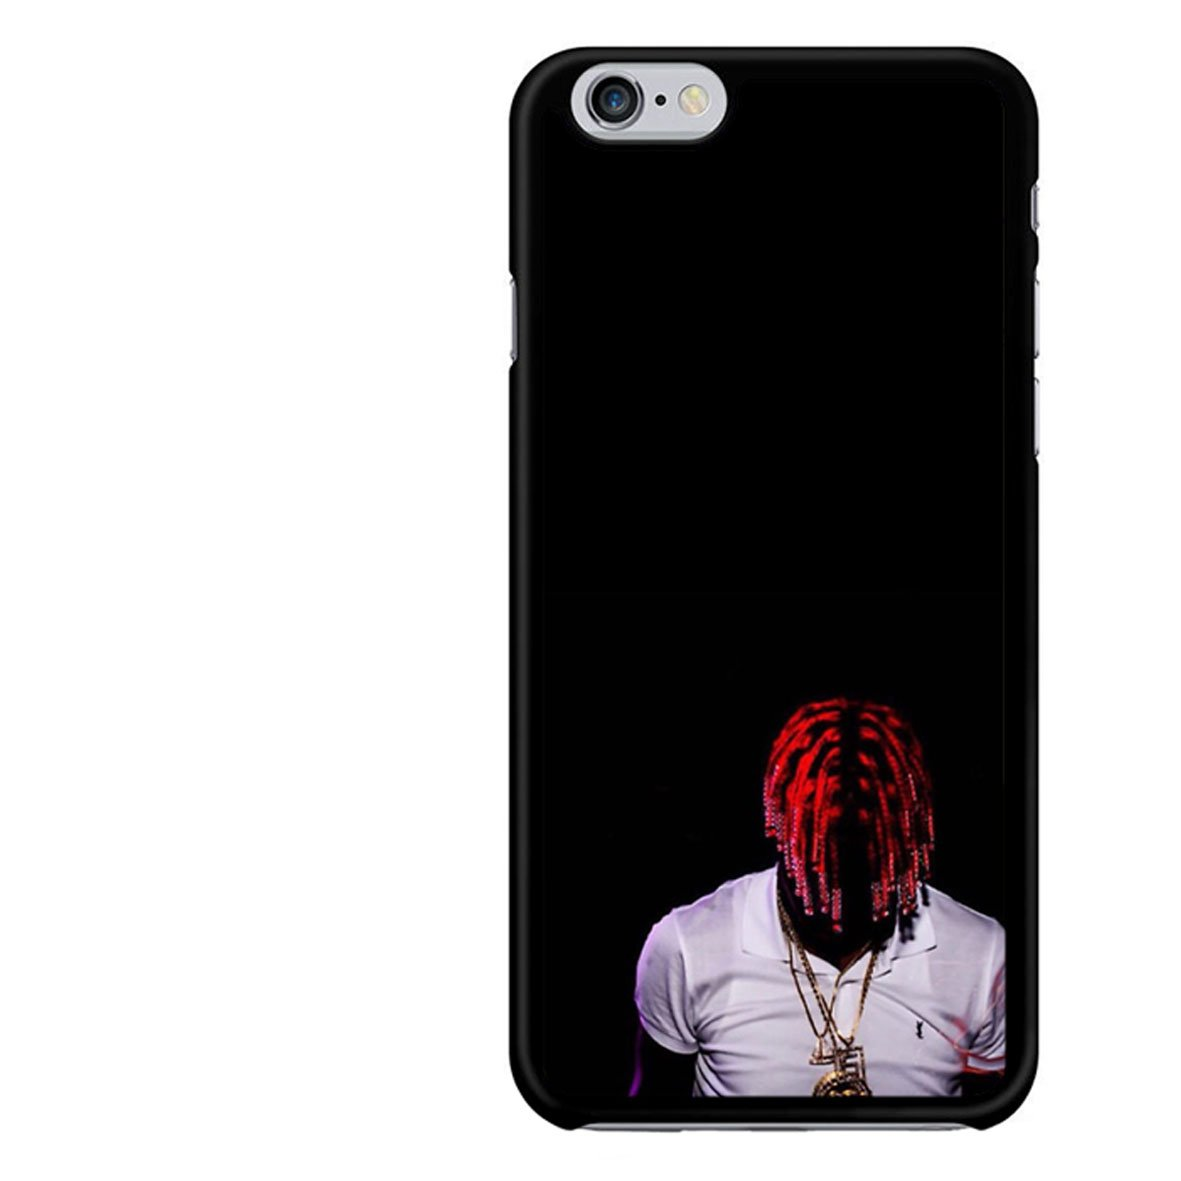 Lil Yachty Phone Case Cover iPhone 6 Plus and 6S Plus